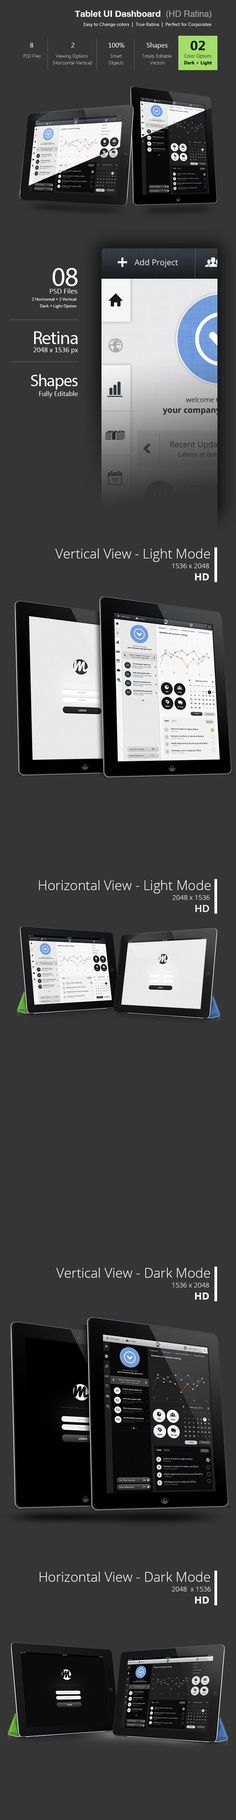 Tablet Dashboard Ui (Retina) by Bouncy Studio, via Behance